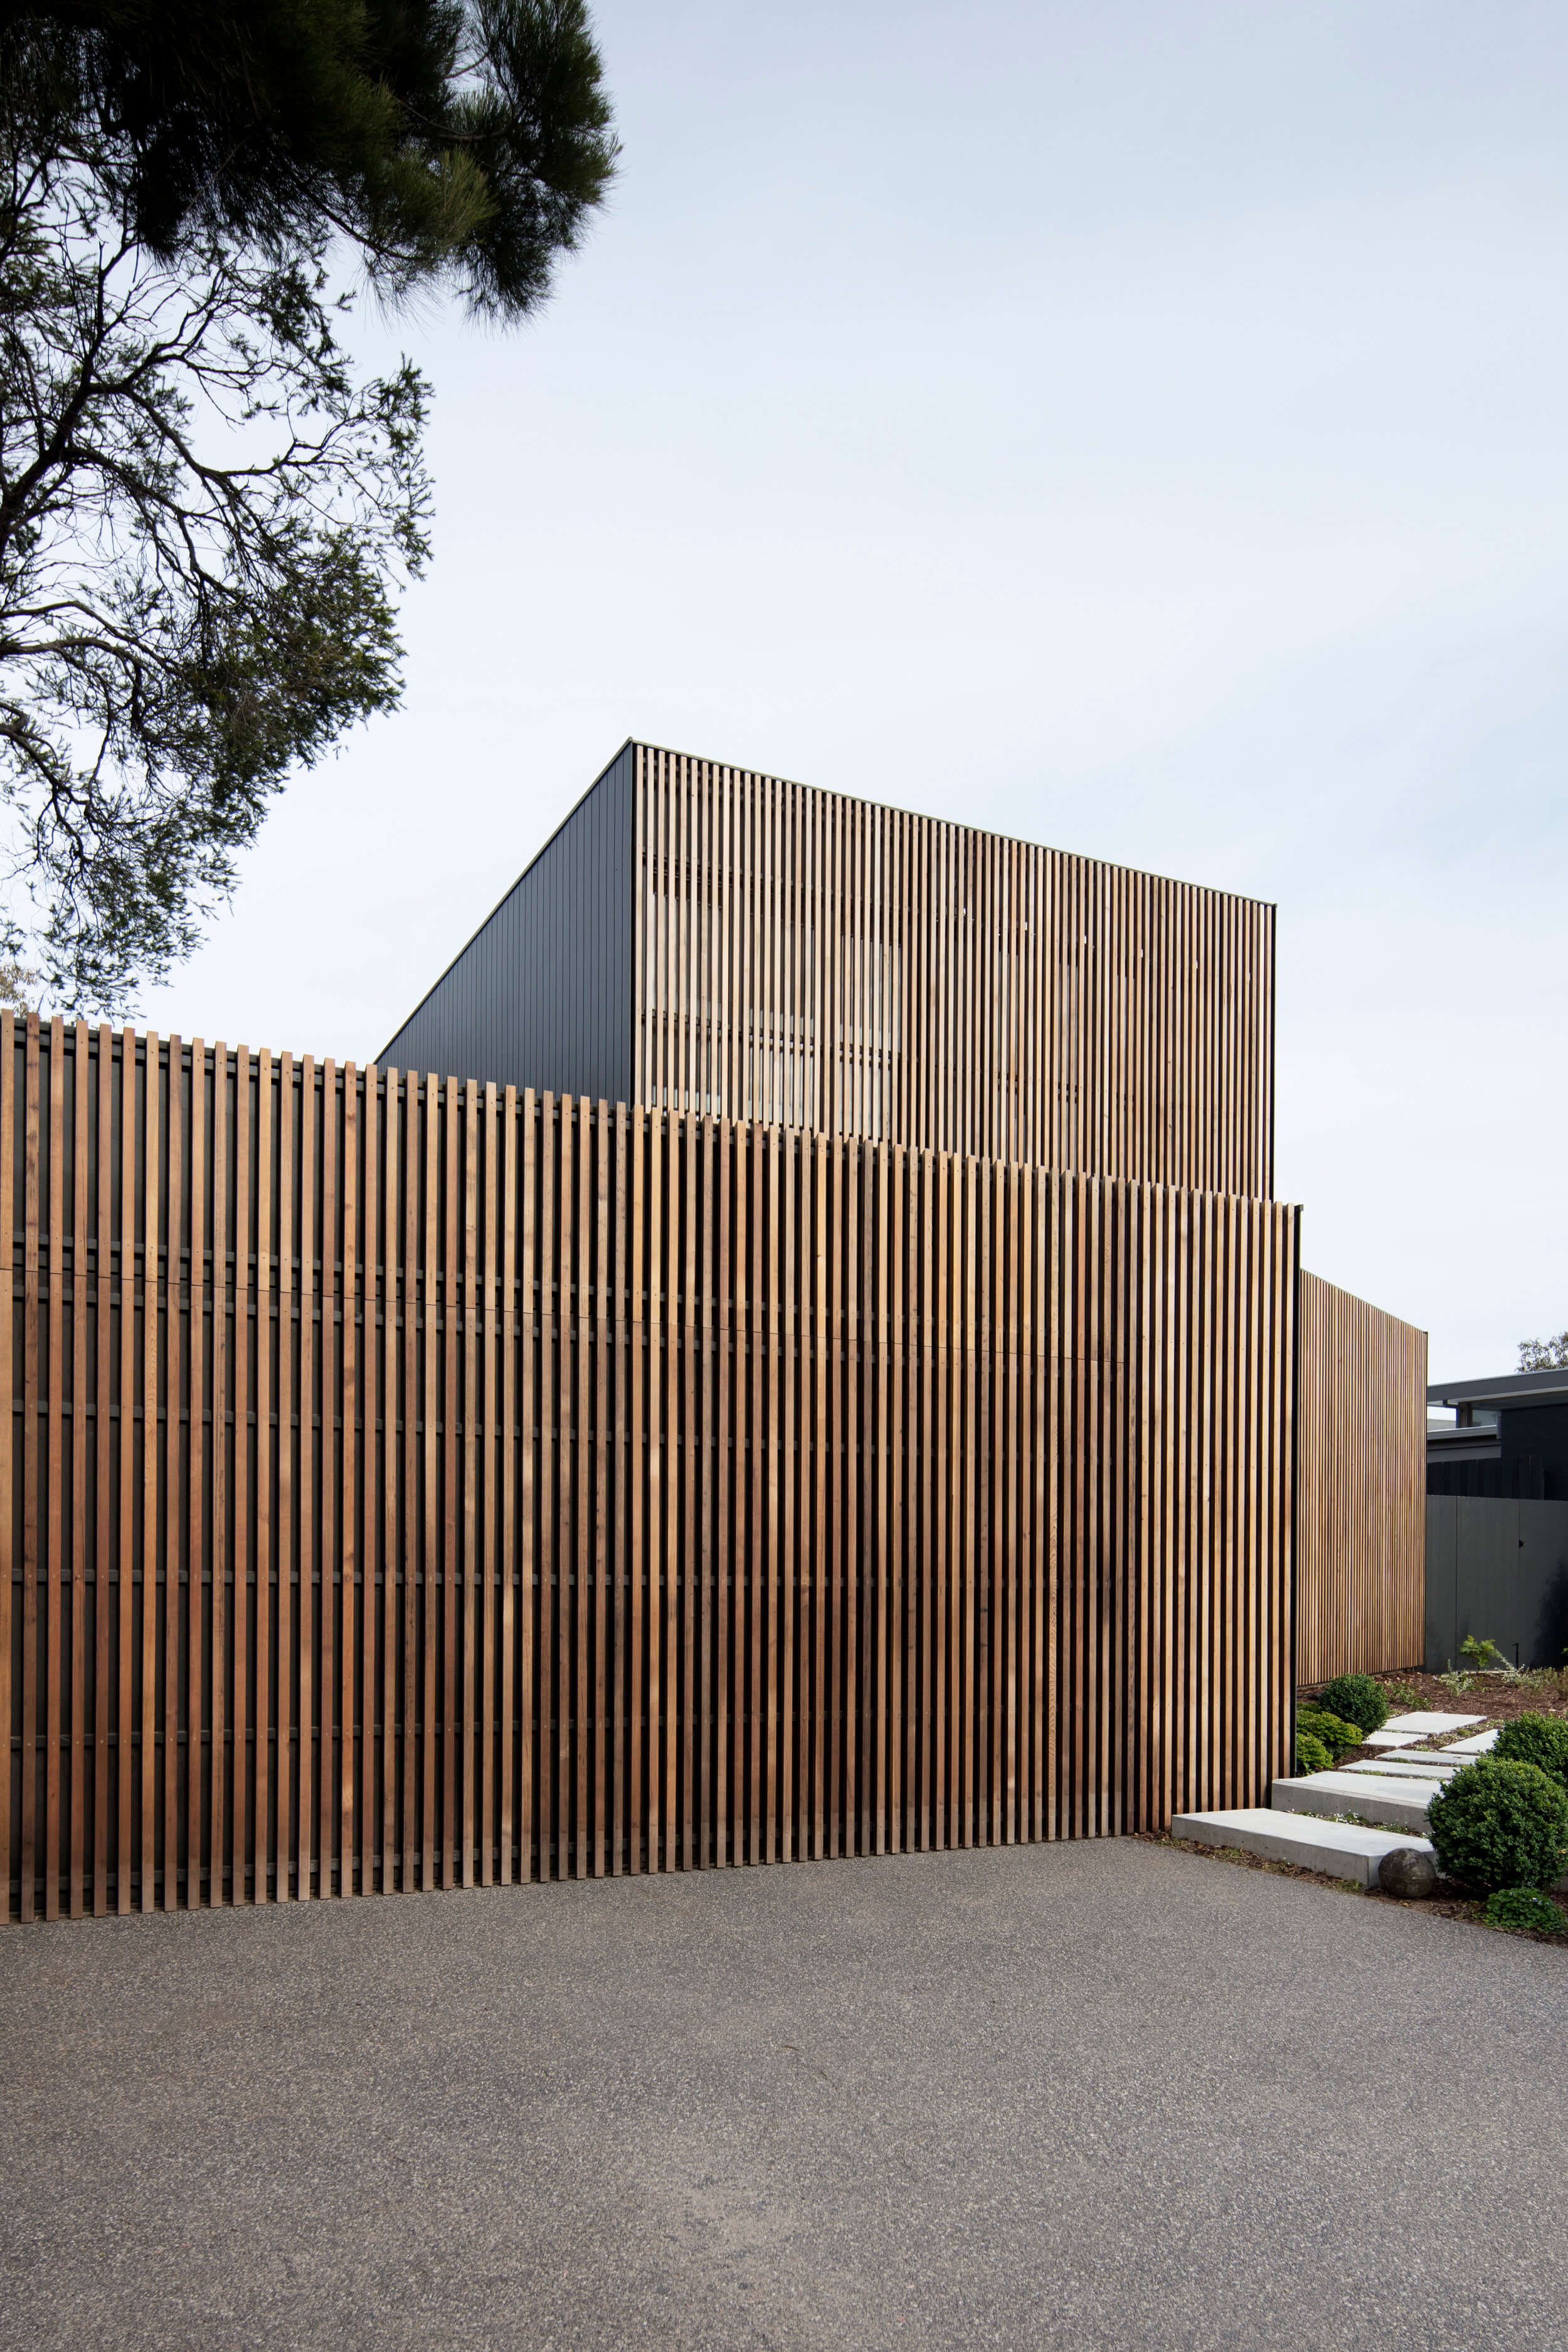 Seachange House by Solomon Troup Architects